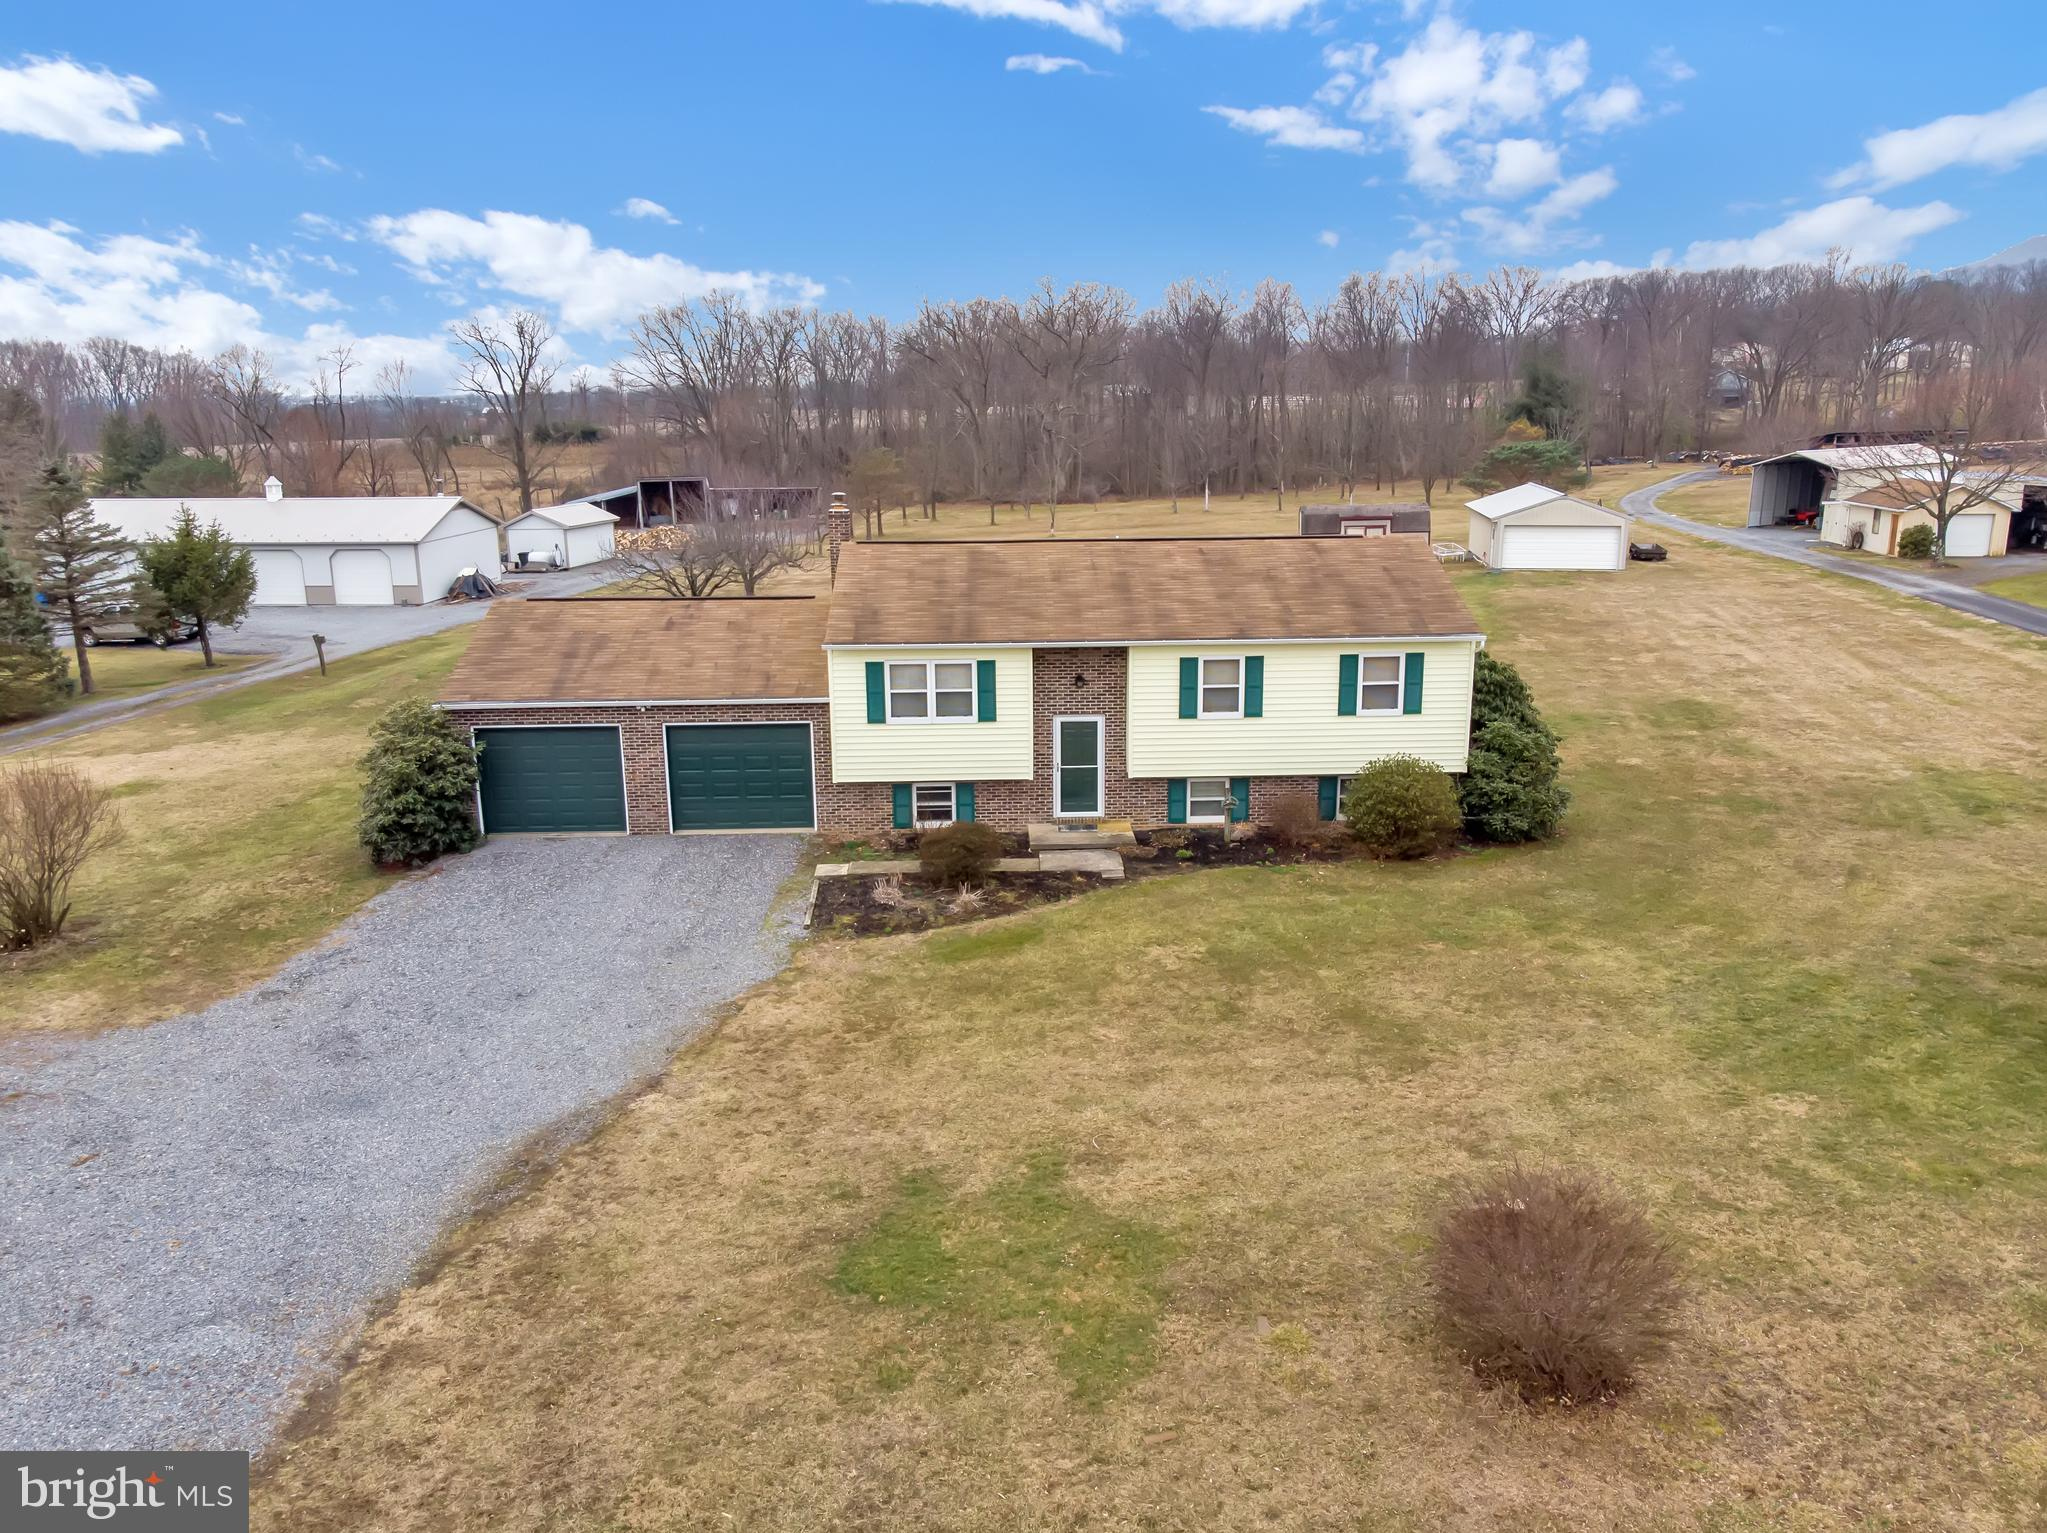 485 Meadows Road, Newville, PA 17241